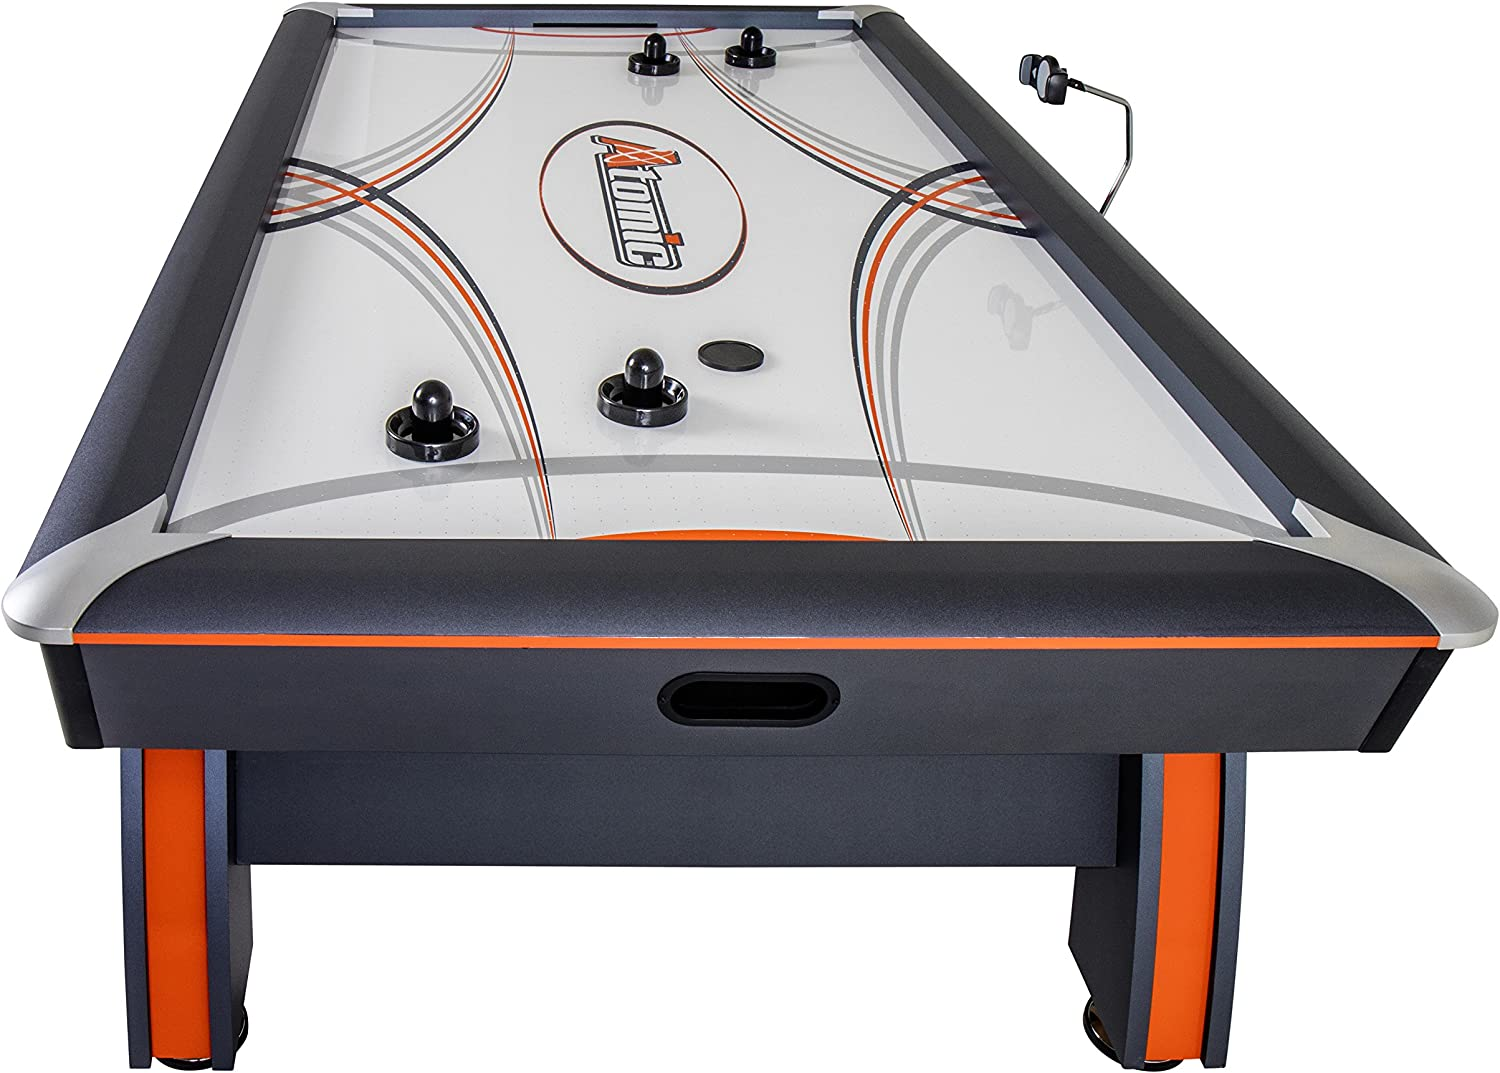 Atomic 7.5' Contour Air Powered Hockey Table with ScoreLinx Mobile App Technology : Sports & Outdoors